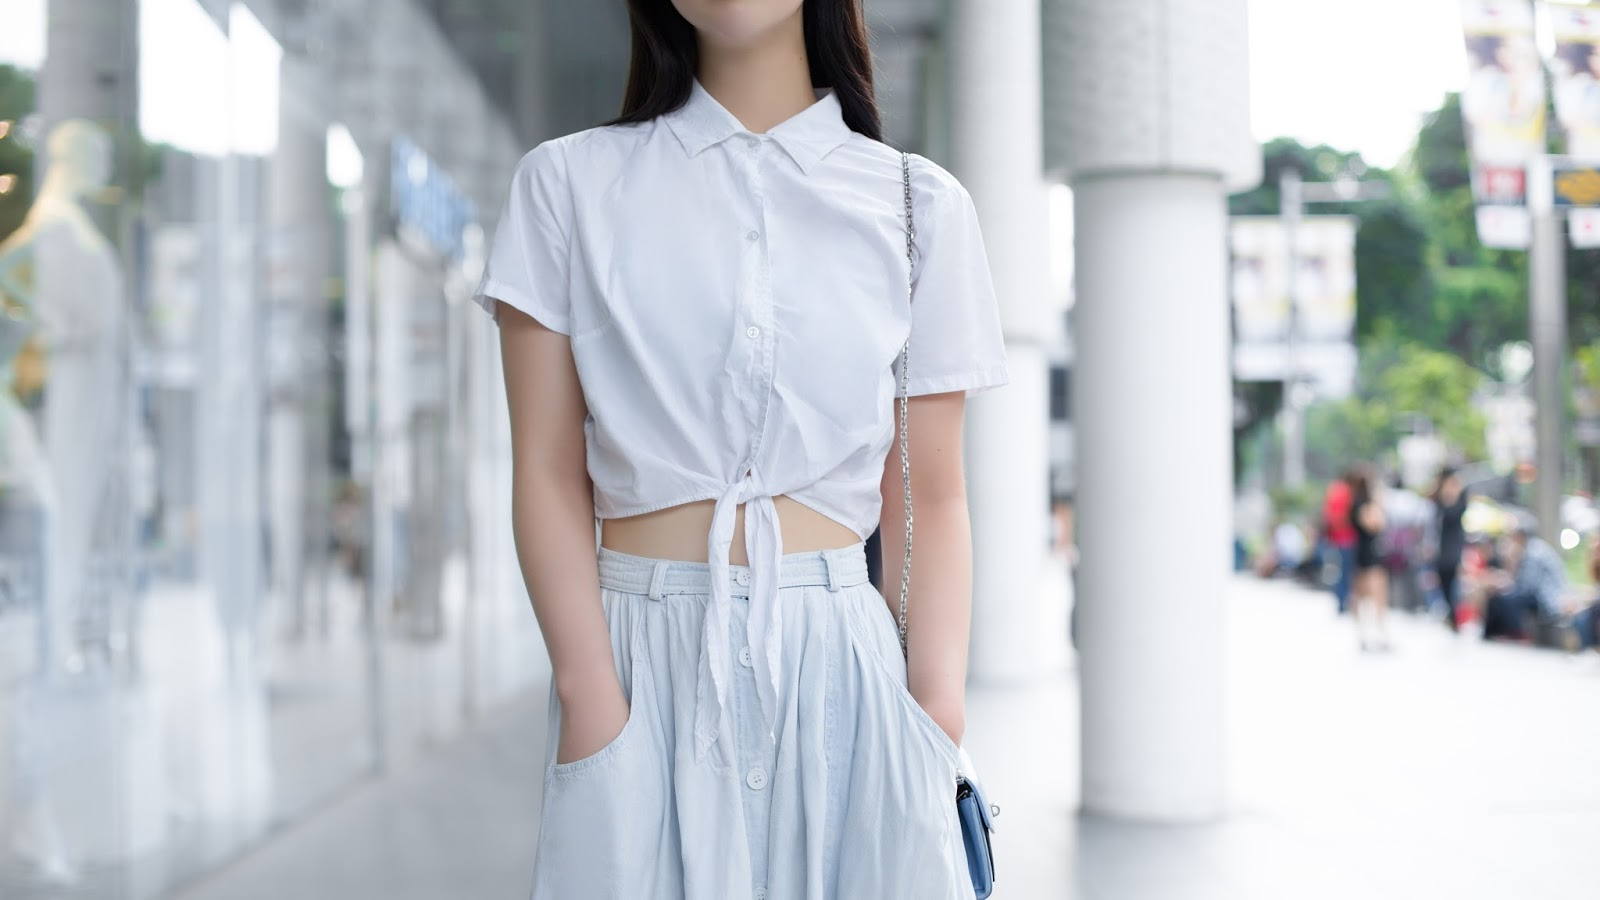 SHENTONISTA-Ren Ran-Student-Beijing-Top_American_Apparel-Skirt_American_Apparel-Bag_American_Apparel-Shoes_Beijing-080515